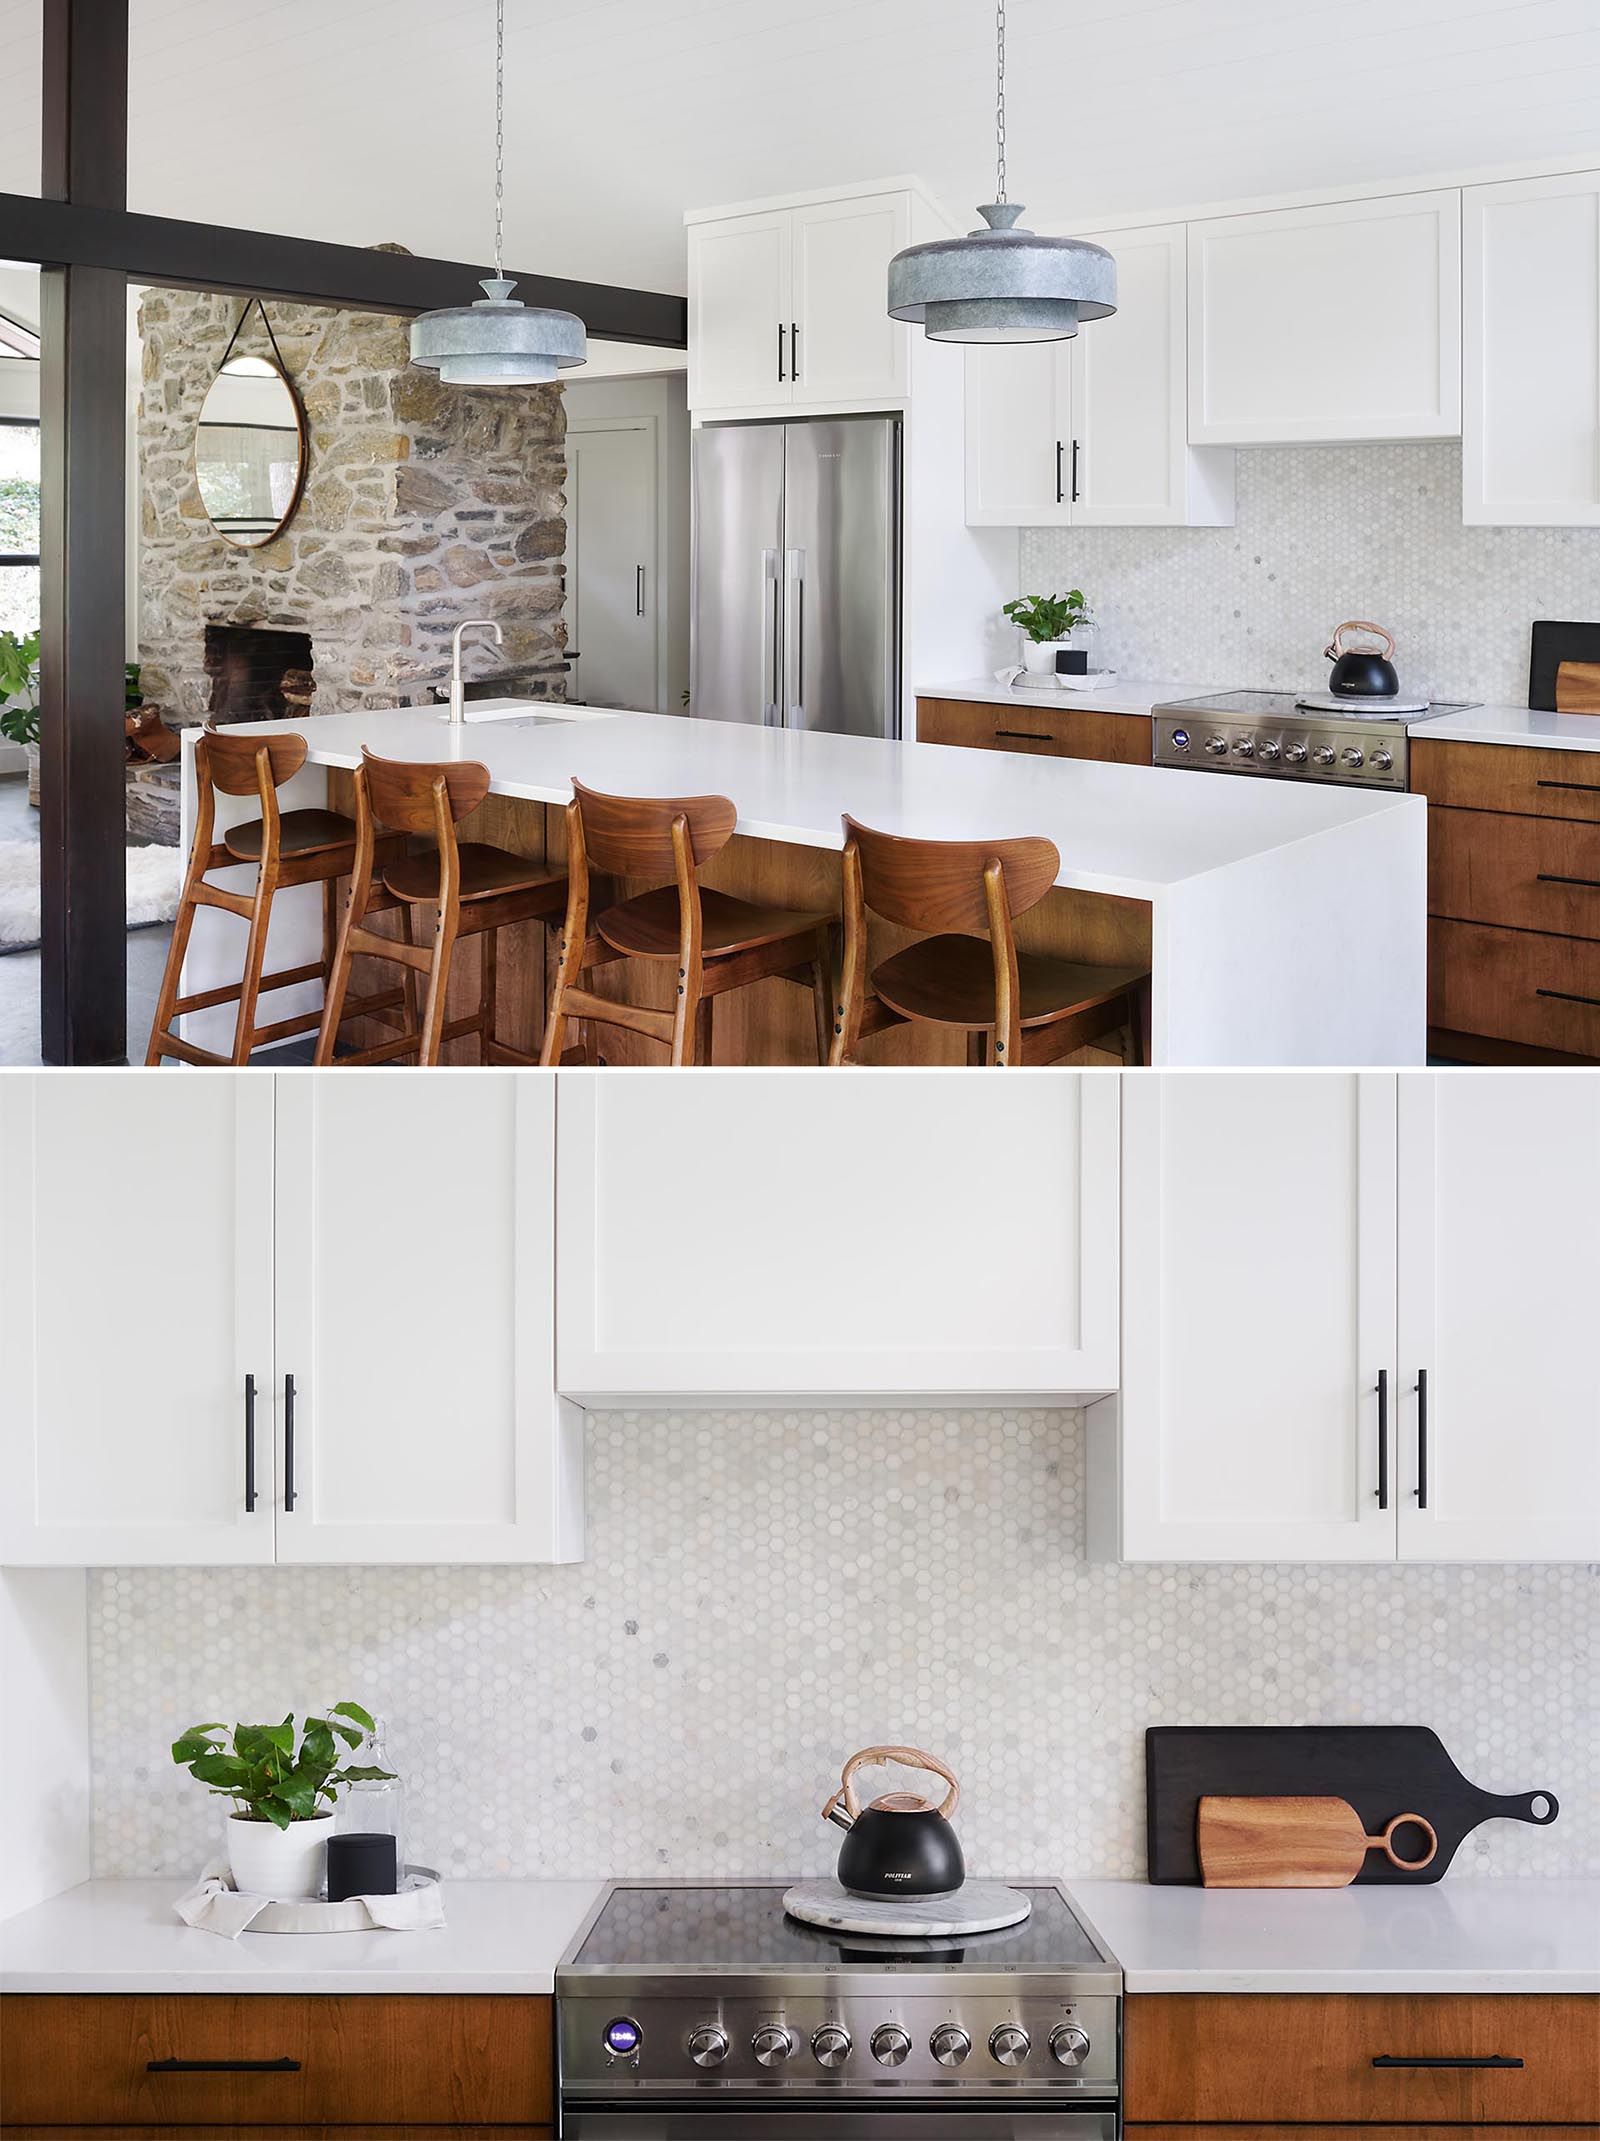 A modern kitchen with a large kitchen island provides ample countertop space, while the upper cabinets have a simple shaker style with black hardware.